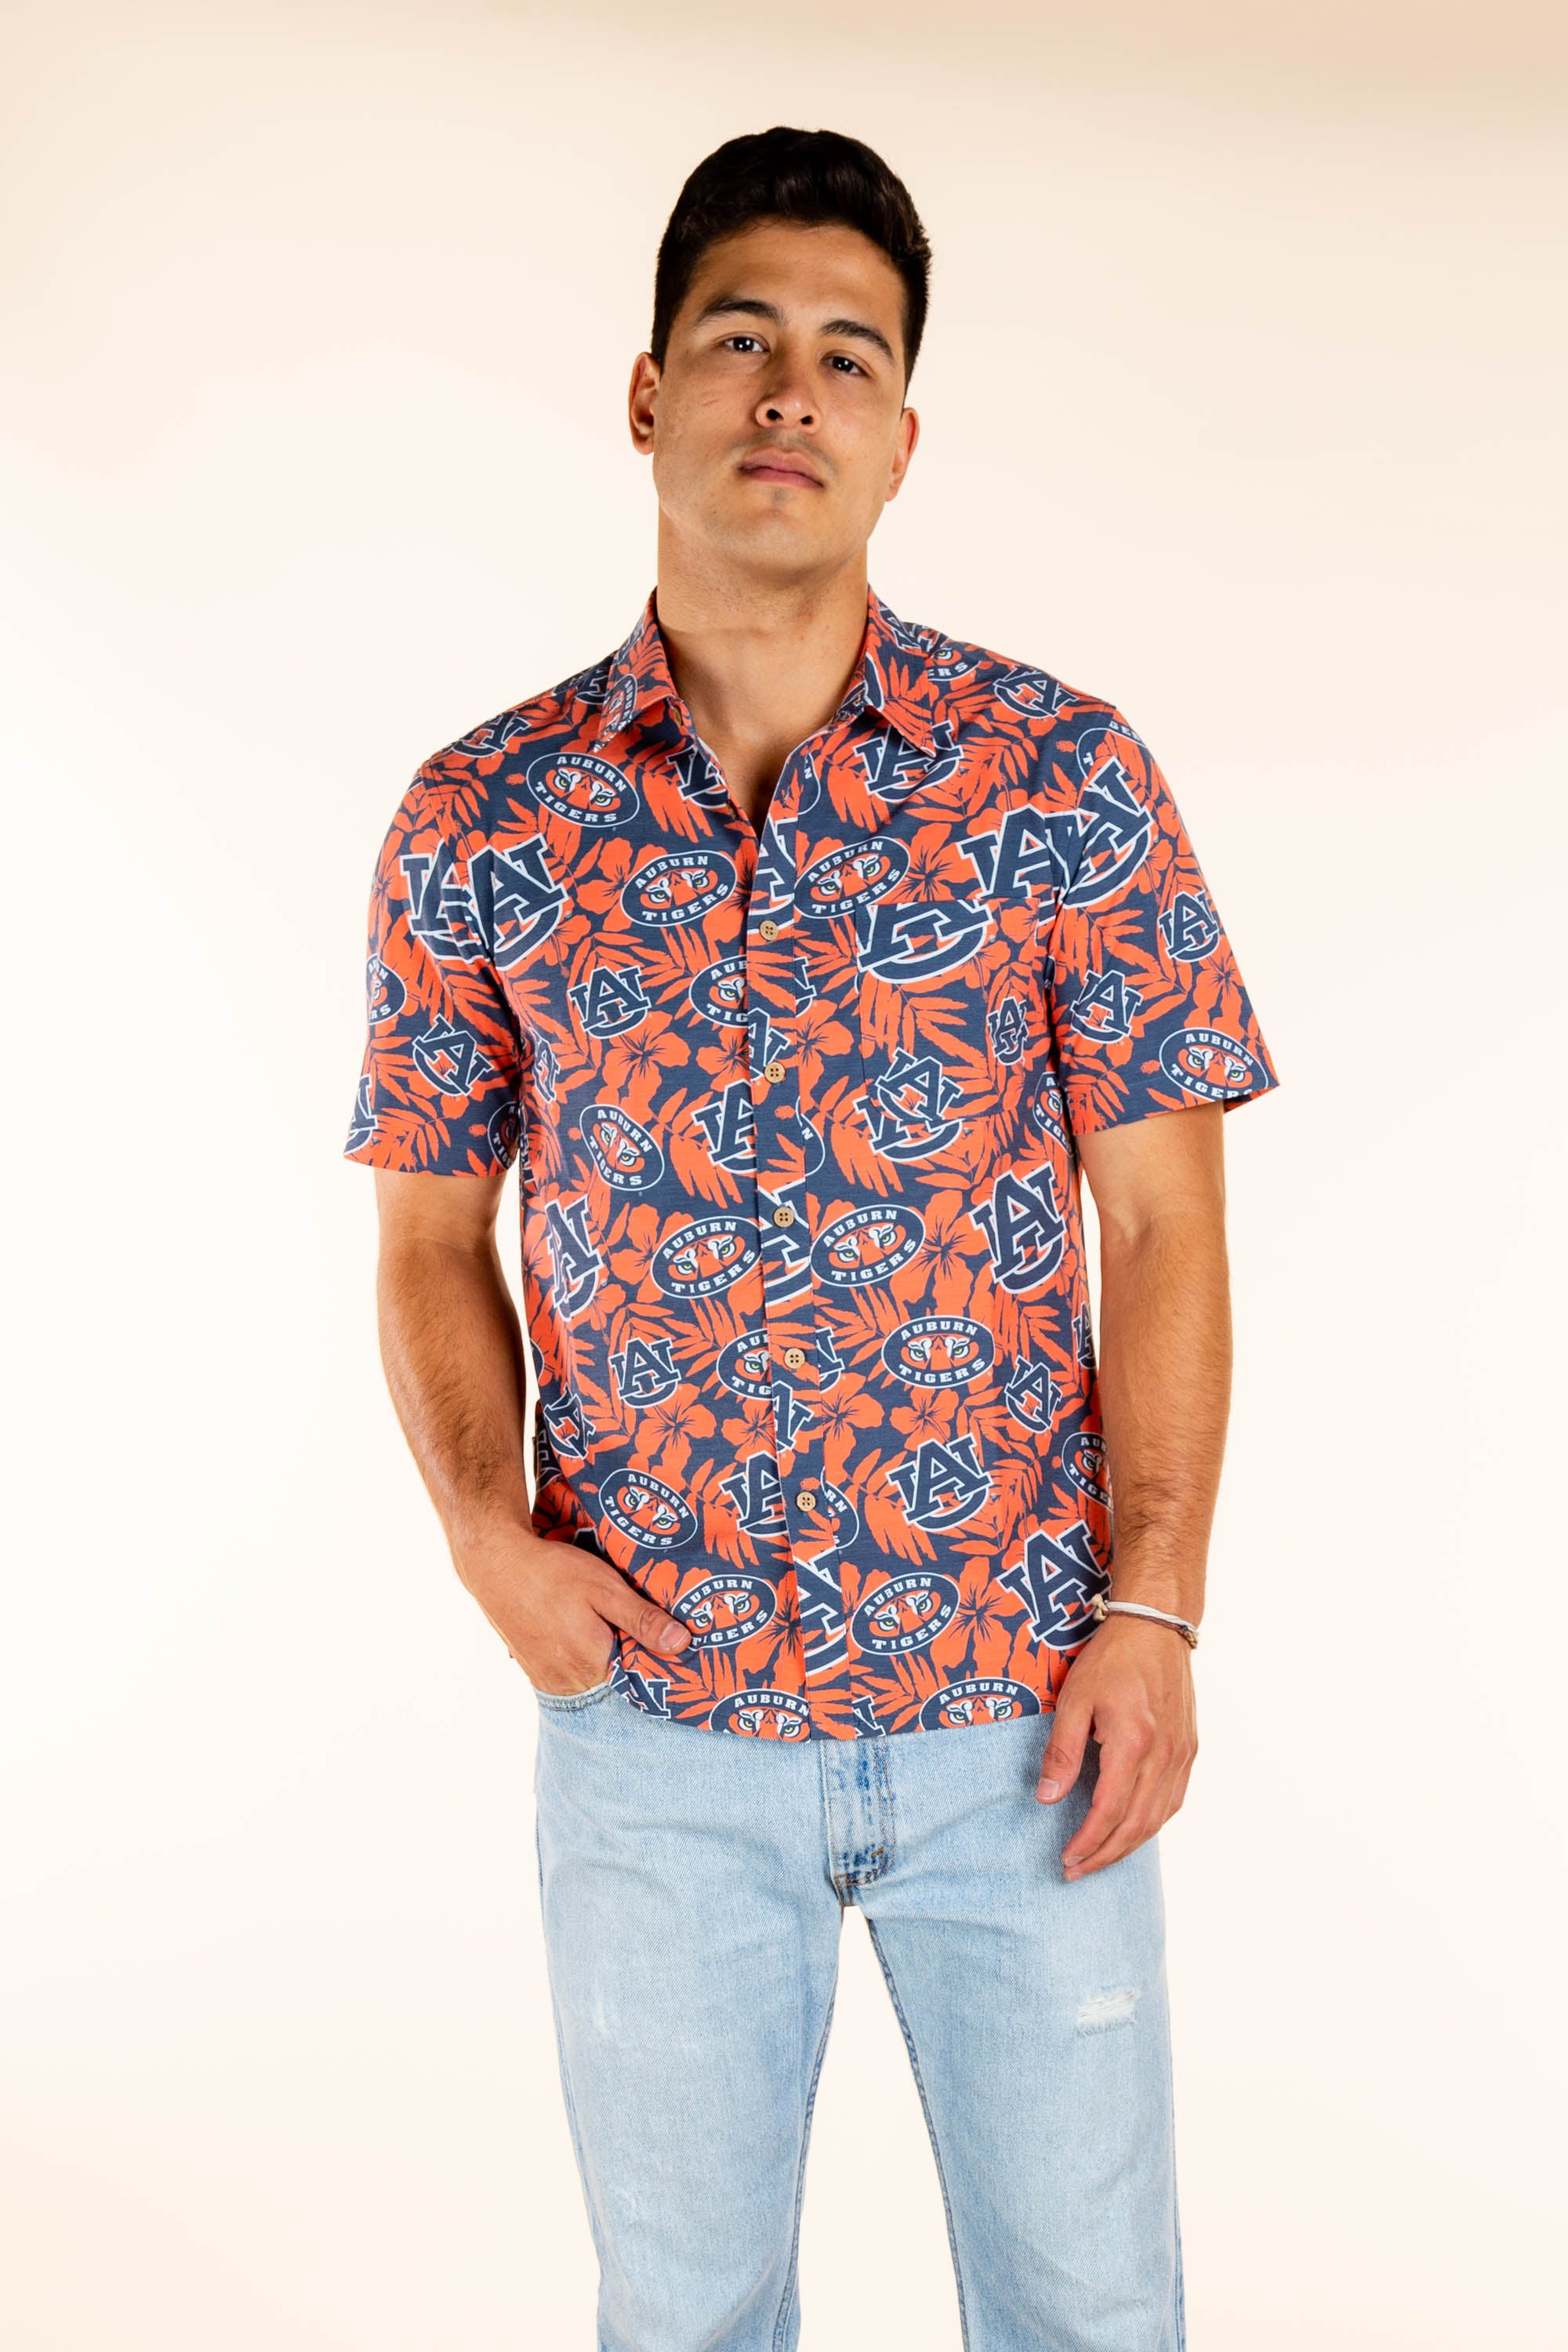 Auburn Tigers Hawaiian Tailgating Shirt